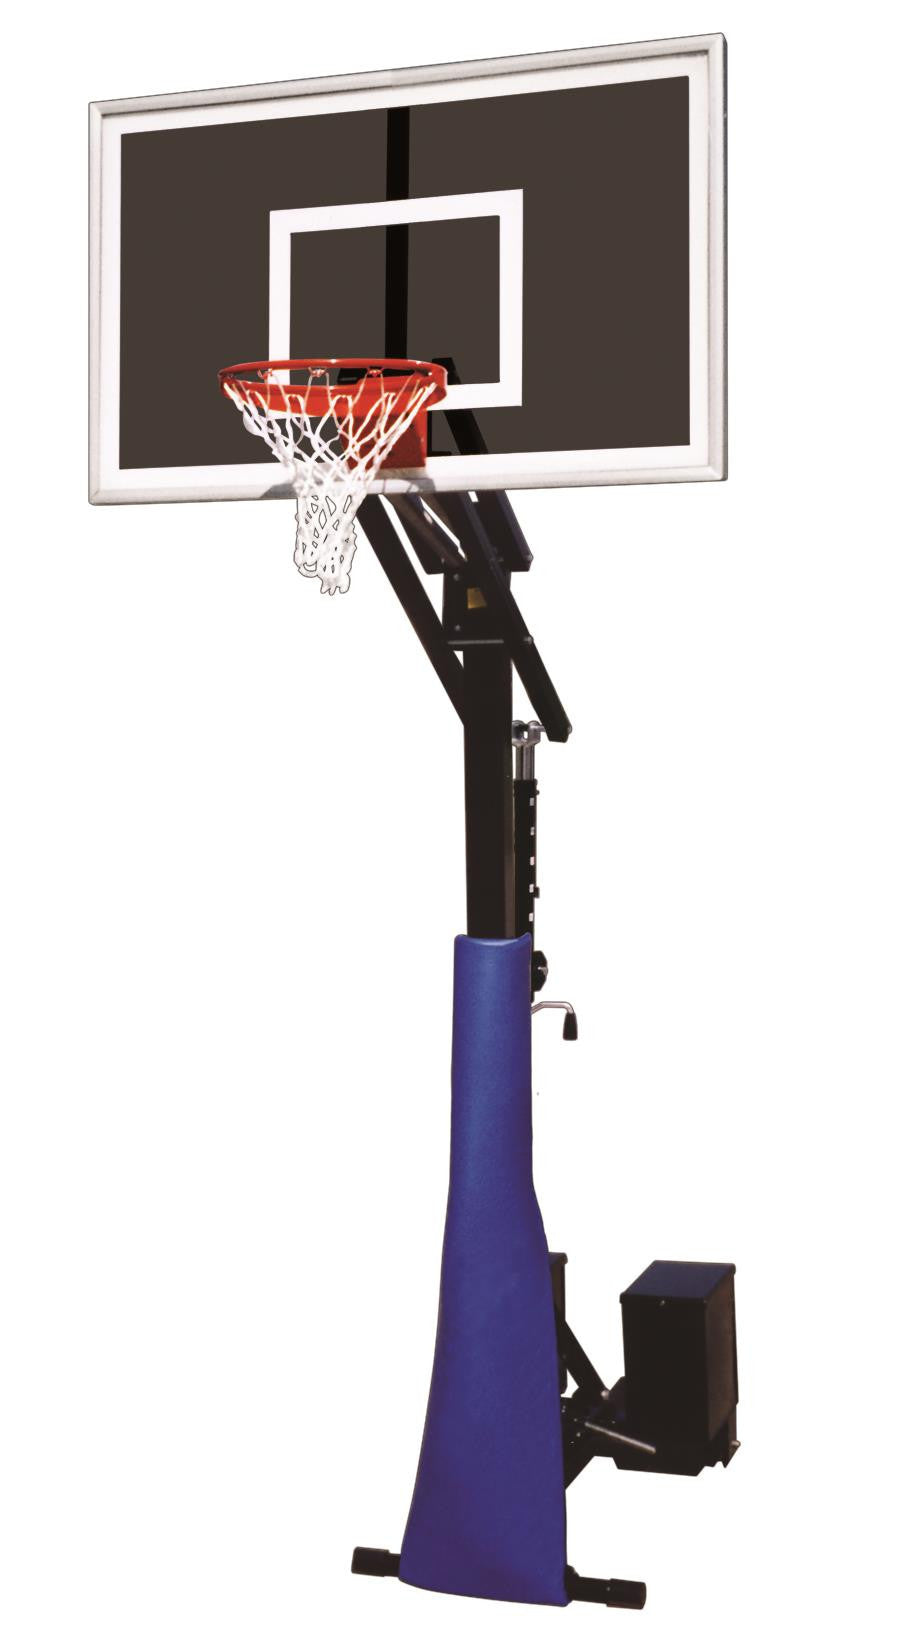 First Team Rolla Jam Eclipse Adjustable Portable Basketball Hoop 60 inch Smoked Glass